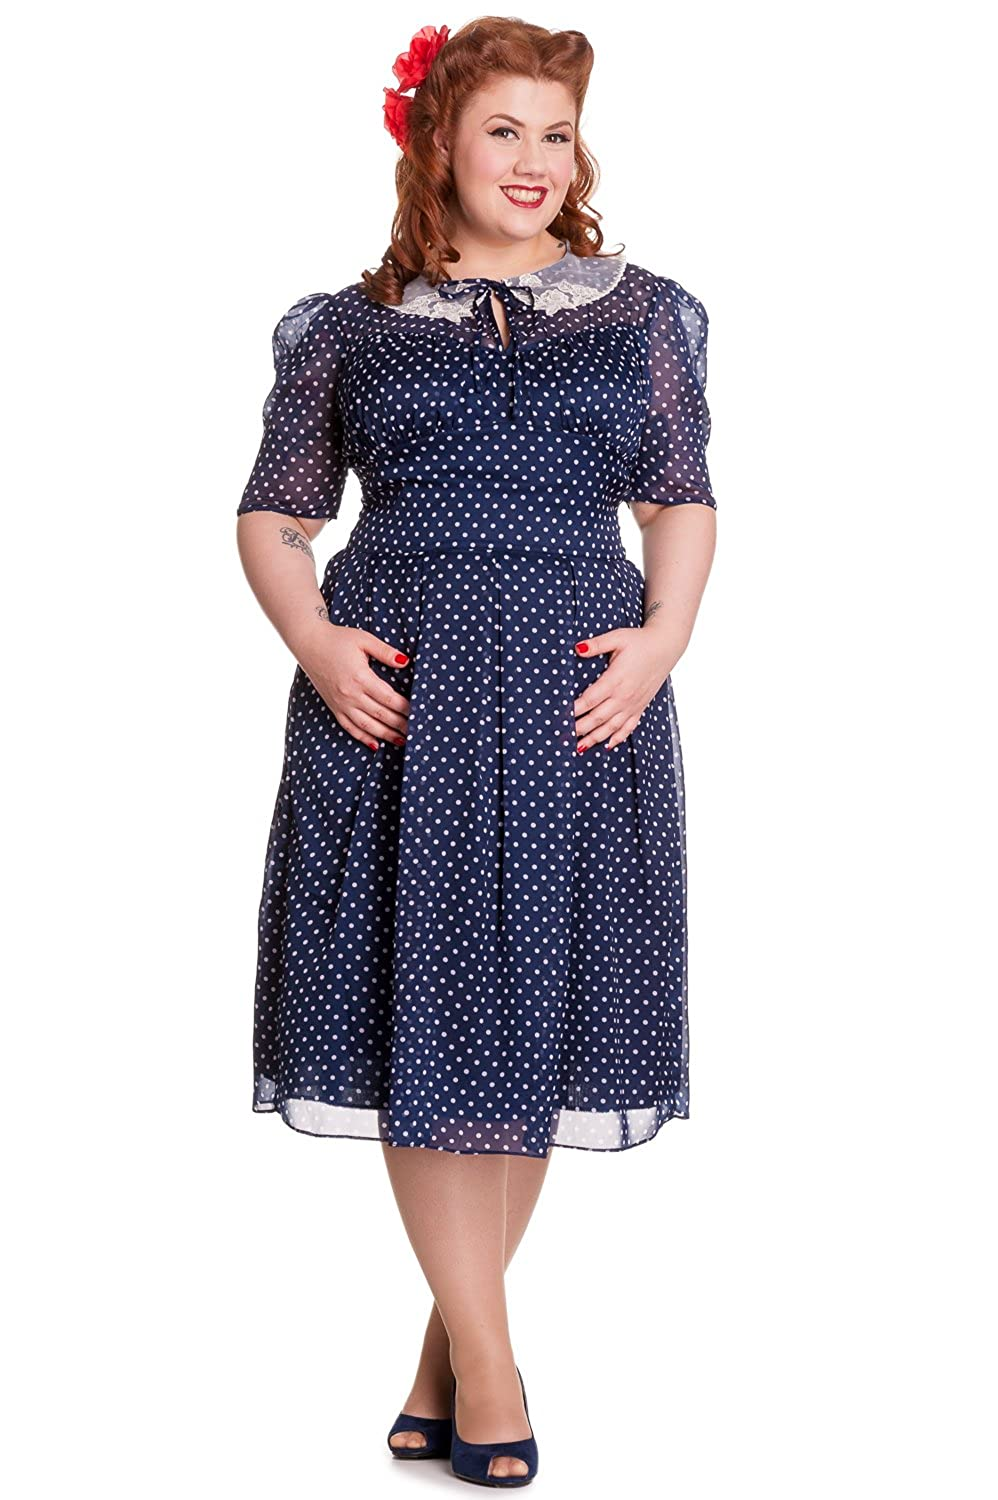 Plus Size Vintage Dresses, Plus Size Retro Dresses Hell Bunny Plus 40s 50s Vintage Cynthia Polka Dot Chiffon Dress $75.00 AT vintagedancer.com